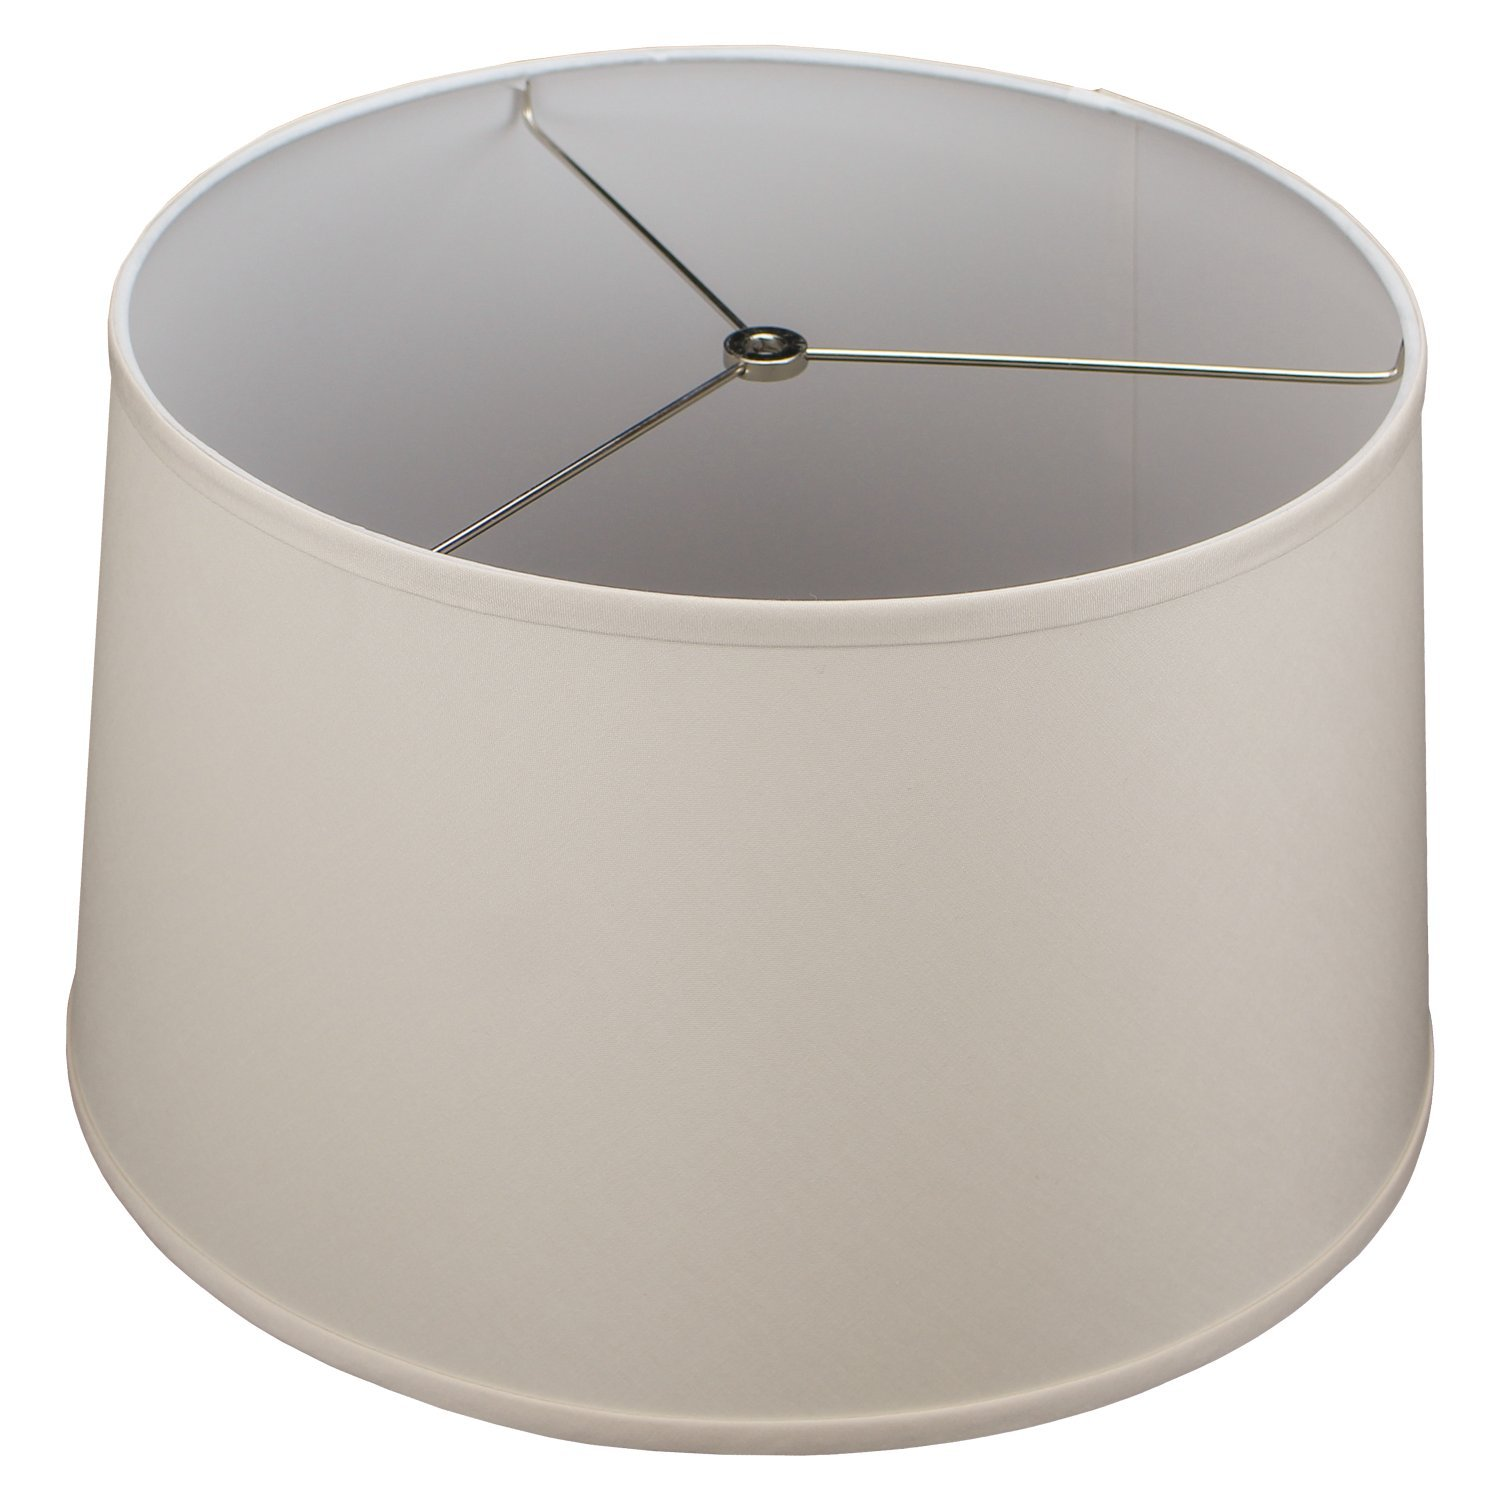 FenchelShades.com Lampshade 15'' Top Diameter x 17'' Bottom Diameter x 10'' Slant Height with Washer (Spider) Attachment for Lamps with a Harp (Ivory)